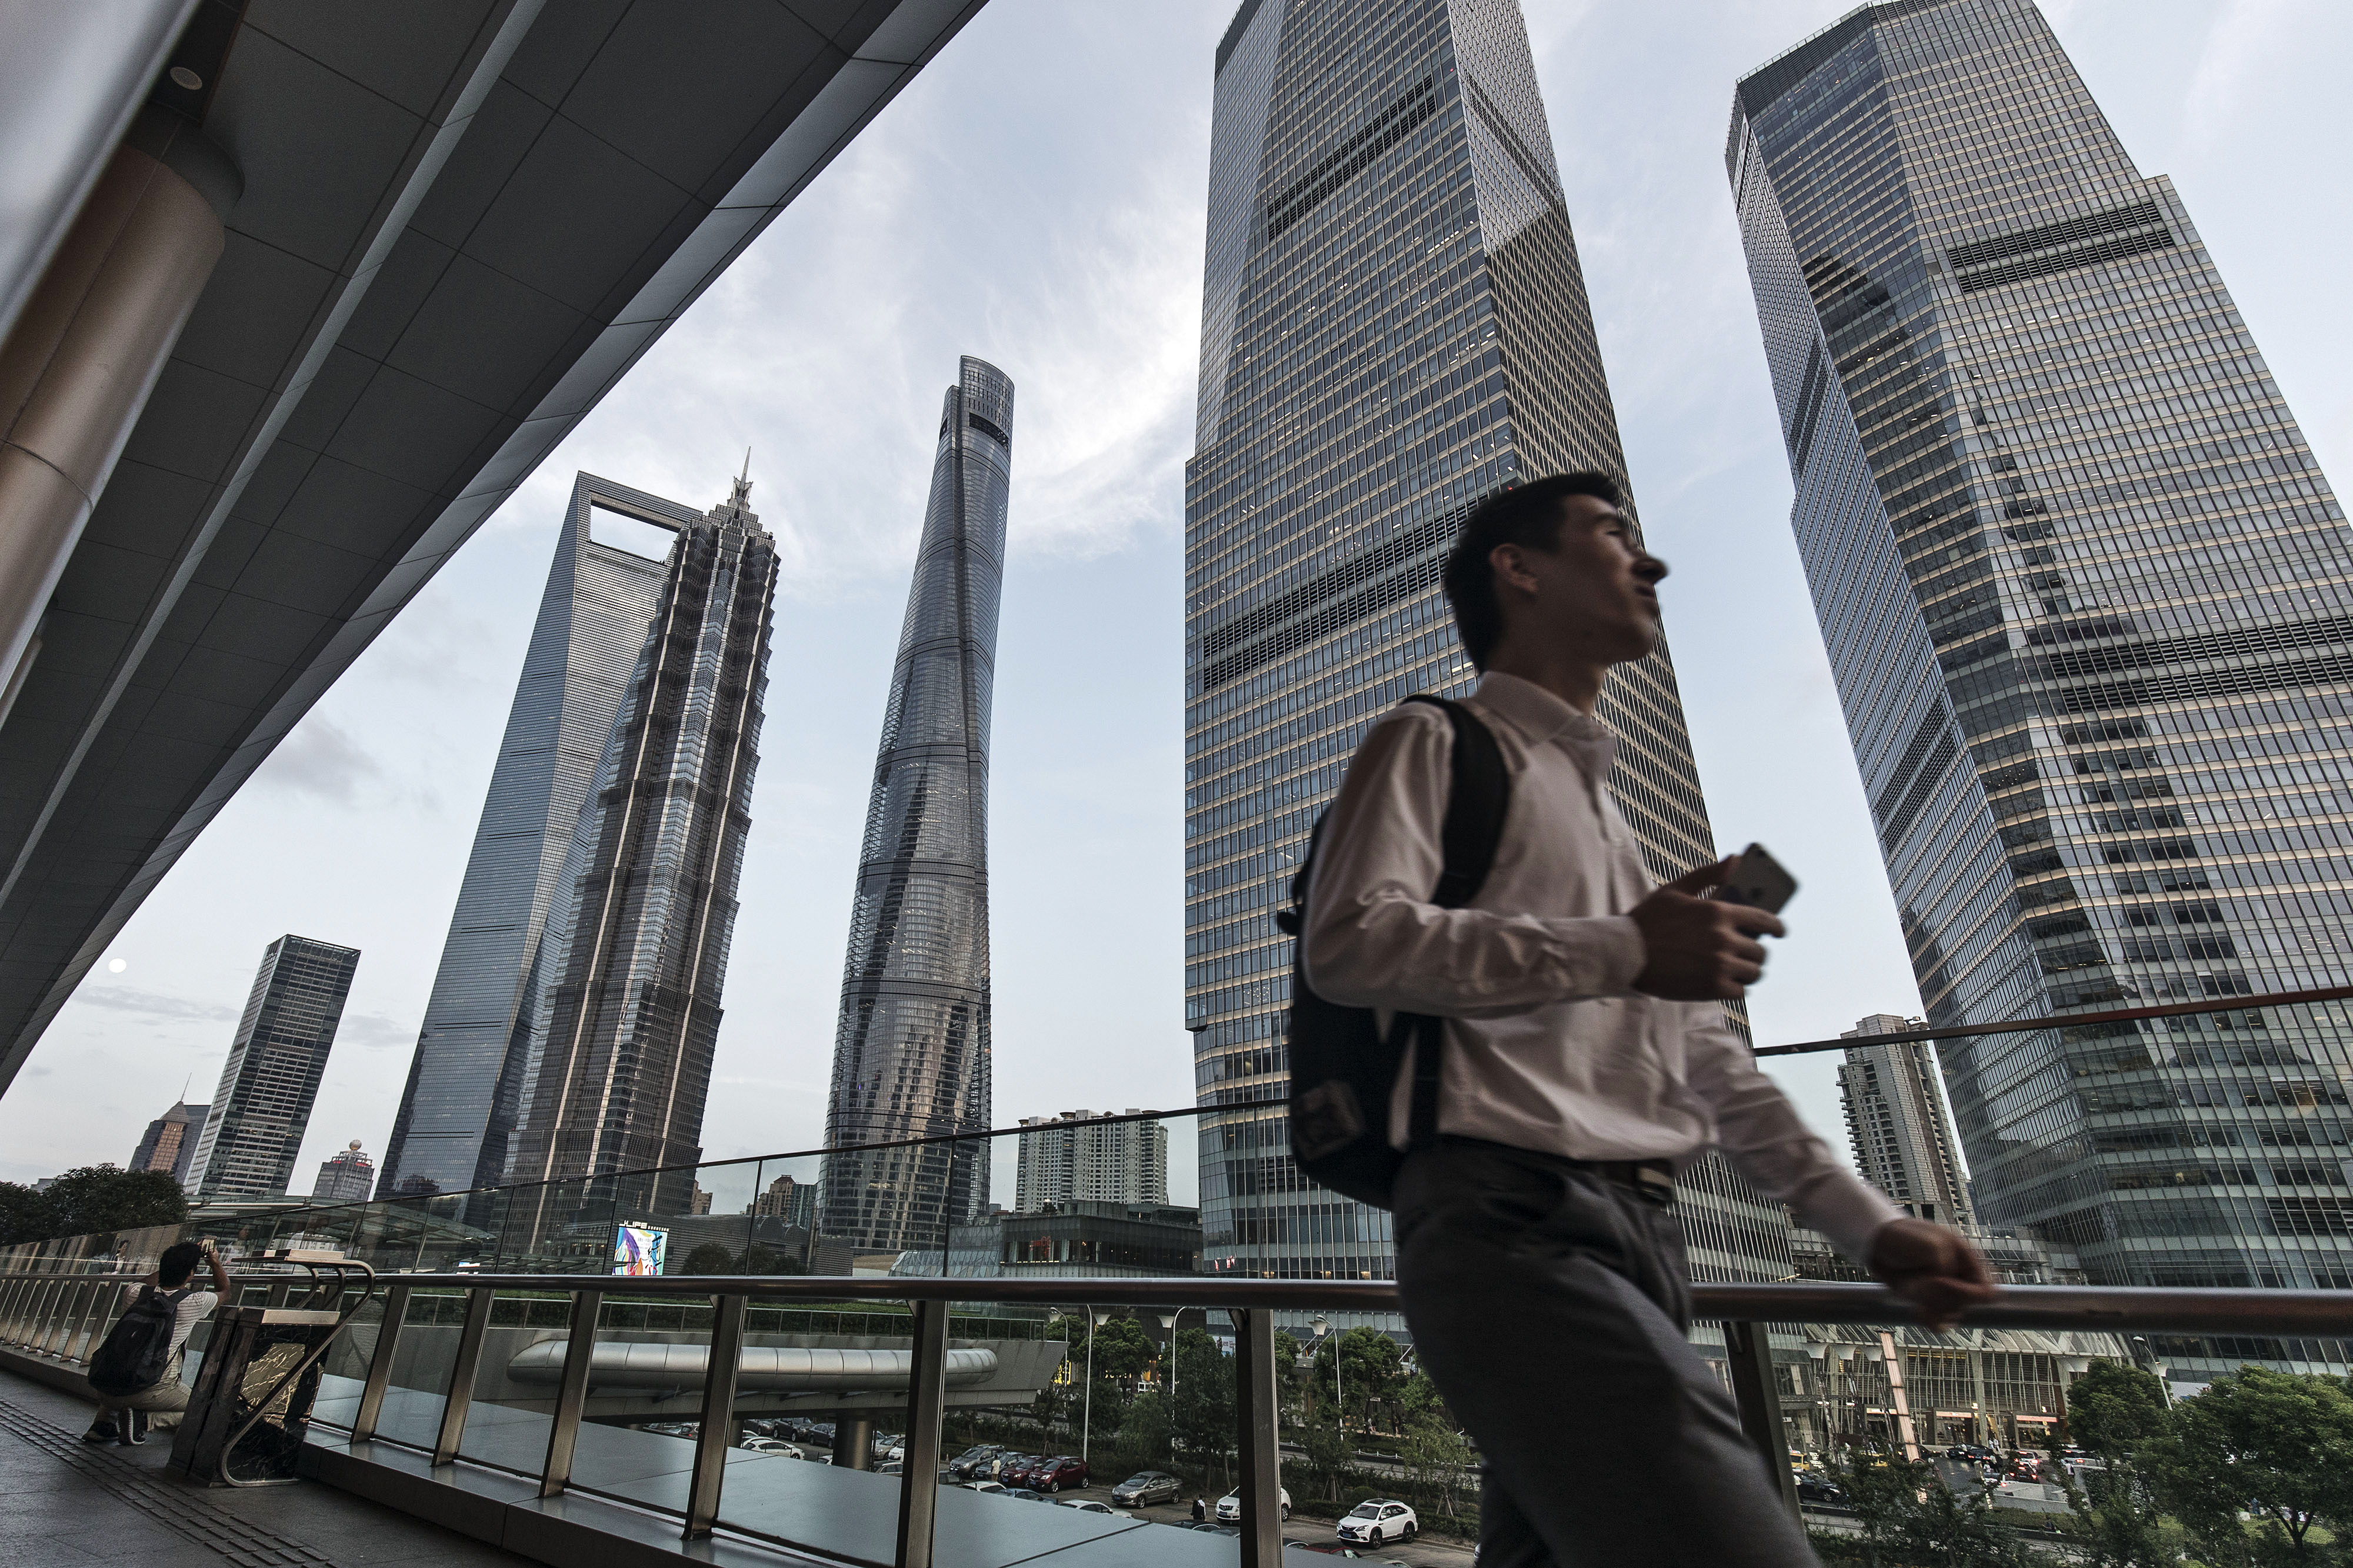 General Views of Pudong as PBOC Cash Withdrawals Seen Denting Sentiment